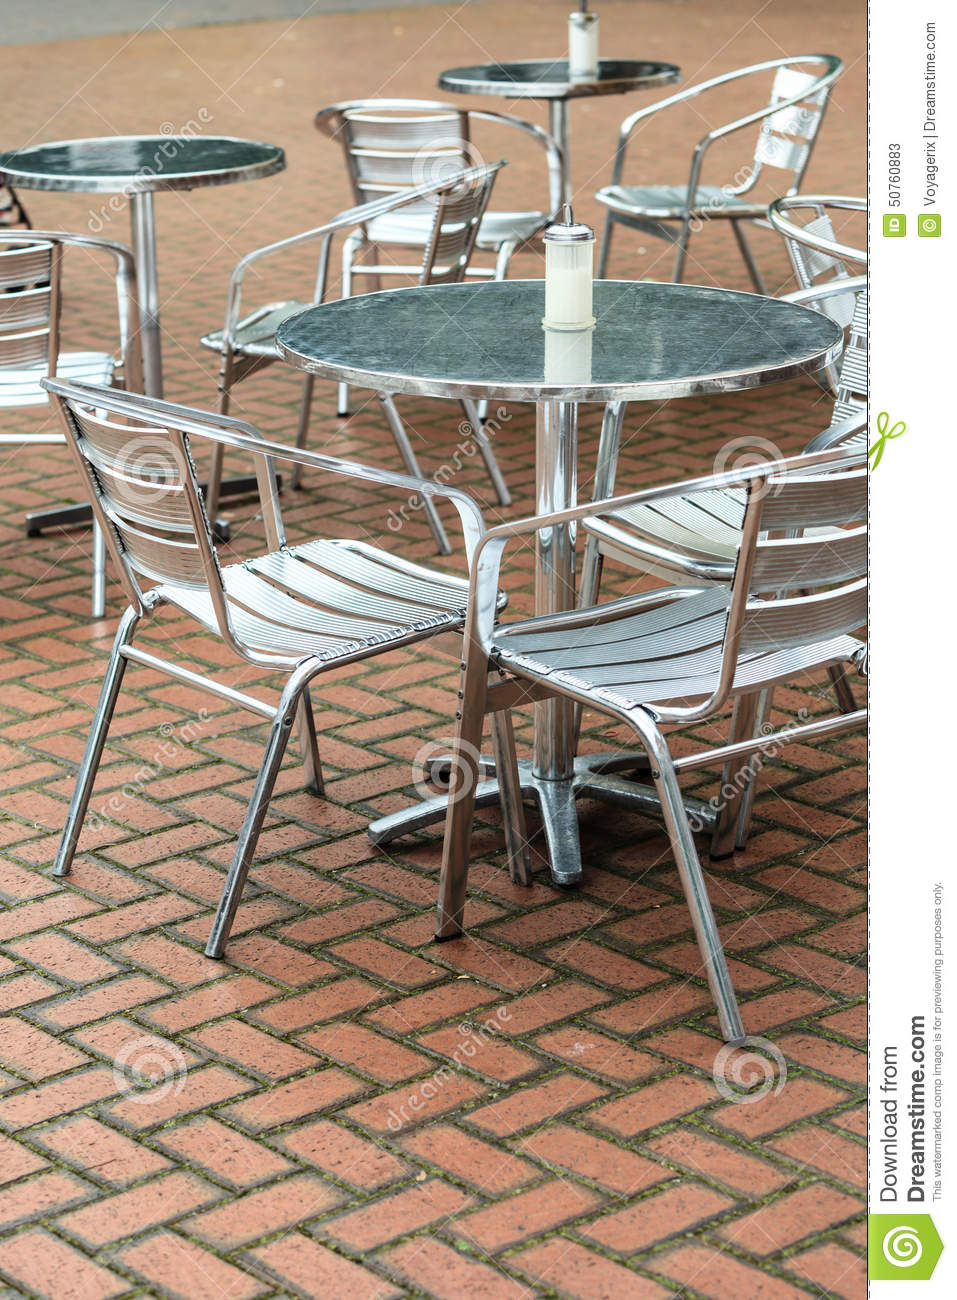 Outdoor cafe chairs - Cafe Coffee Outdoor